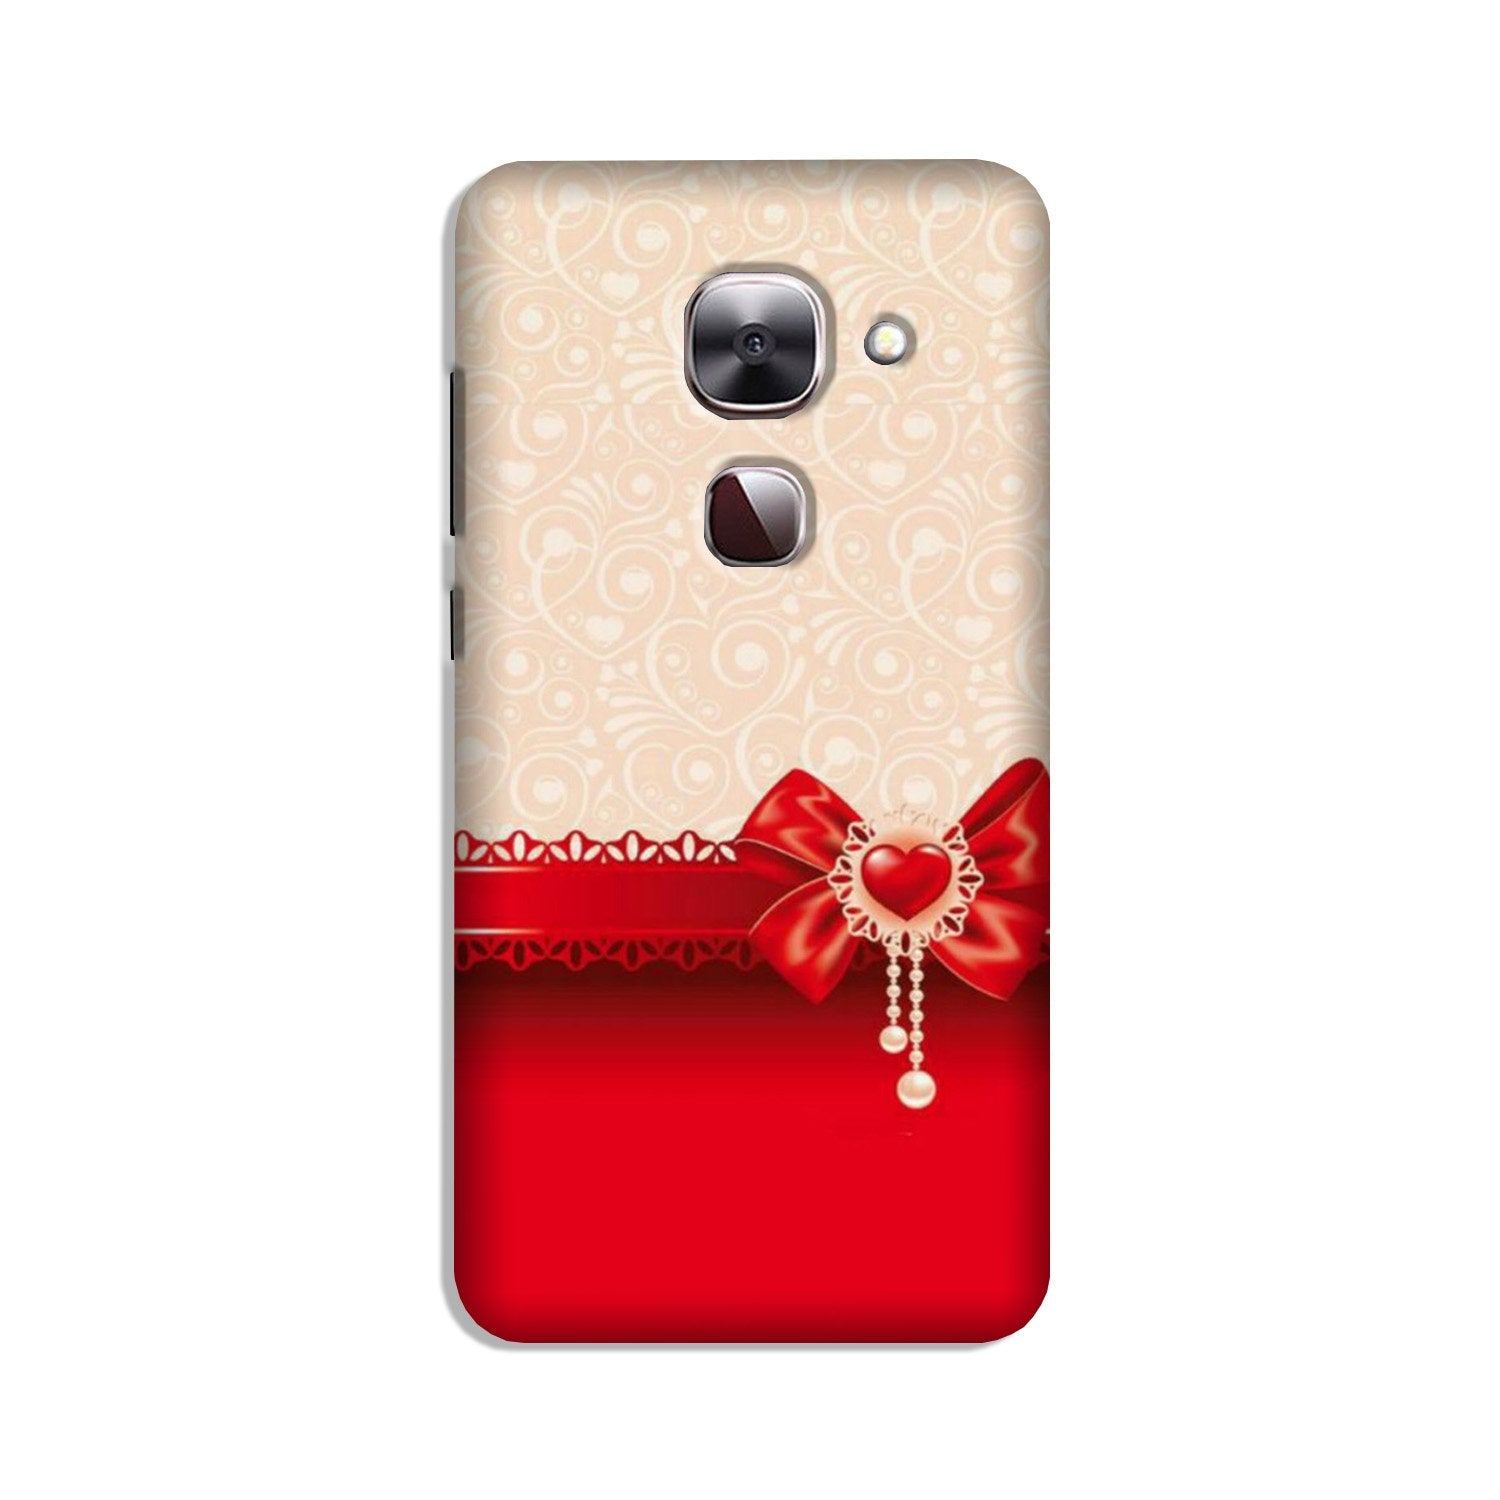 Gift Wrap3 Case for LeEco le 2s